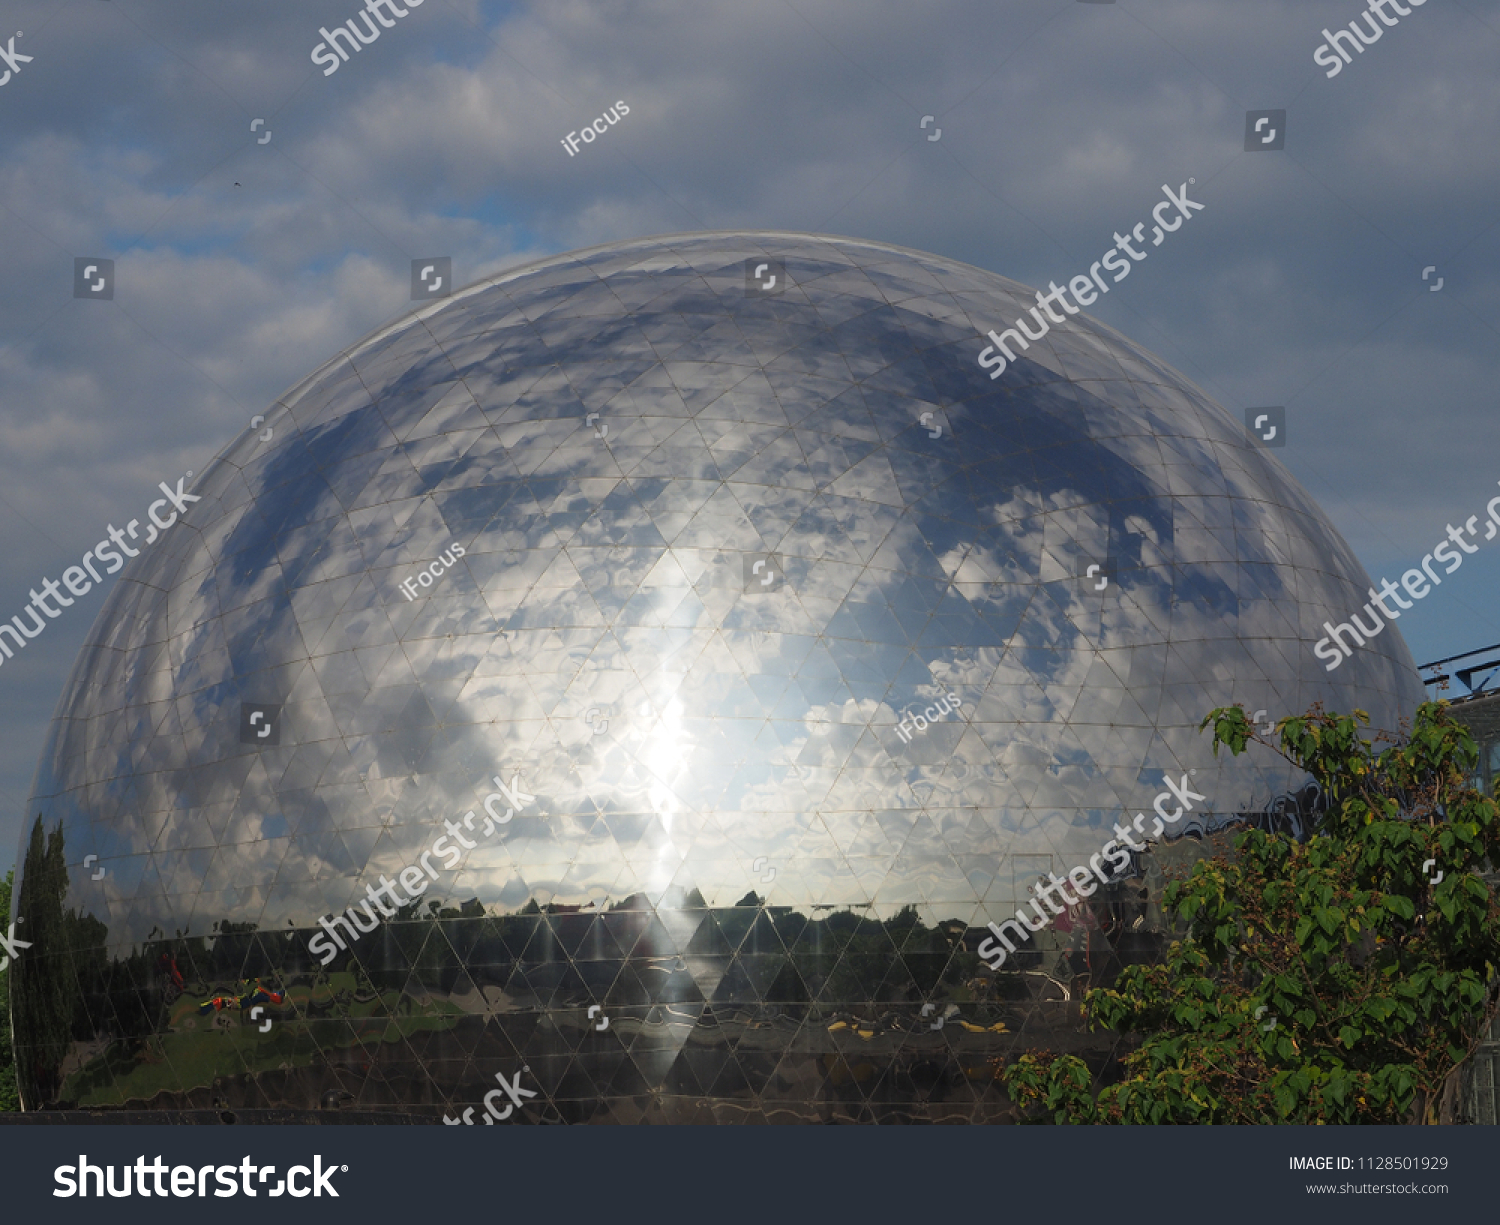 PARIS, FRANCE - JULY 4, 2018: The landscape reflects in geodesic dome La Géode at City of Science and Industry on July 4, 2018, in Paris, France